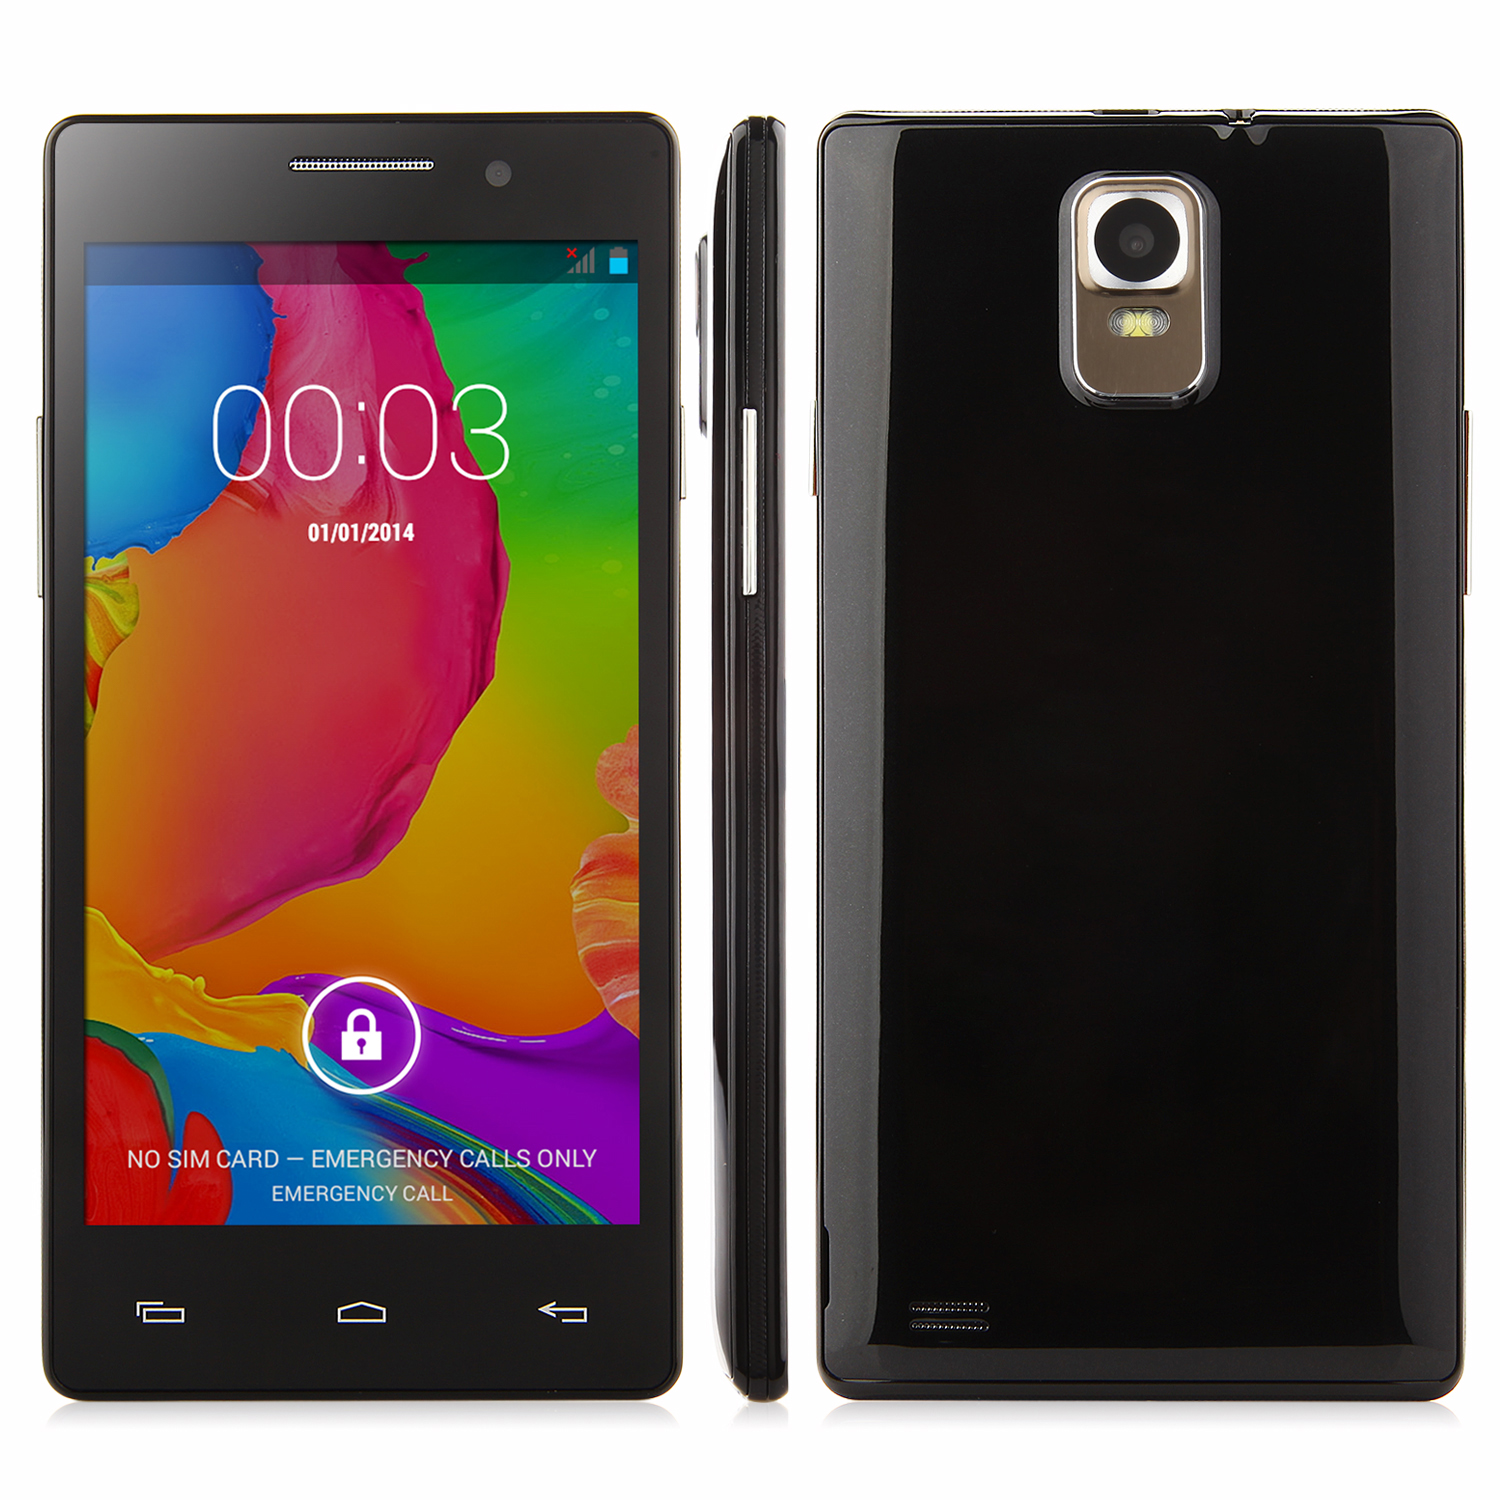 N908 Smartphone Android 4.4 MTK6572 Dual Core 5.0 Inch Screen Smart Wake Black